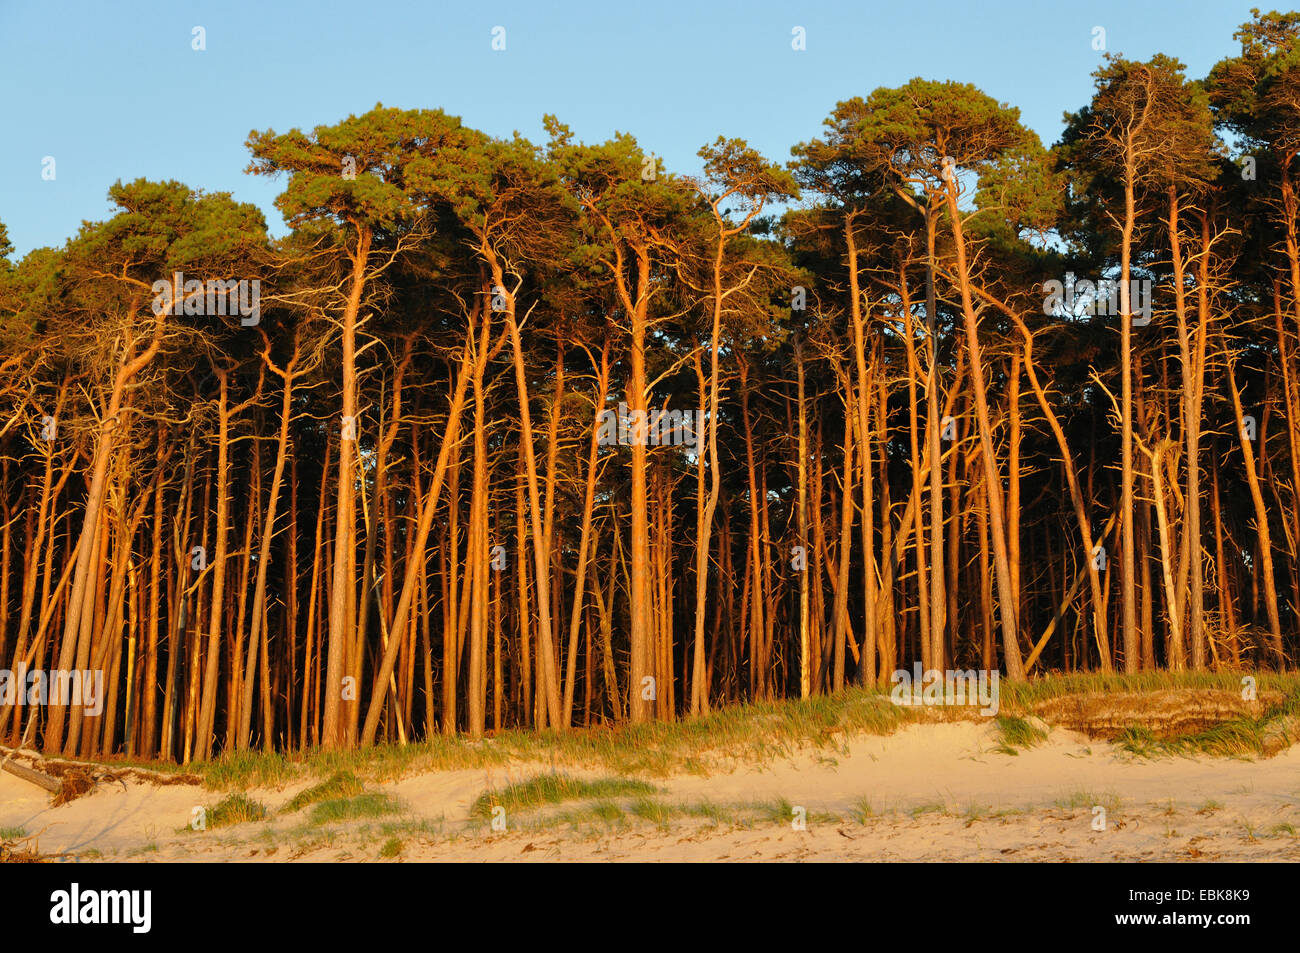 Scotch pine, scots pine (Pinus sylvestris), dune and pine forest, Germany, Mecklenburg-Western Pomerania, Nationalpark Stock Photo